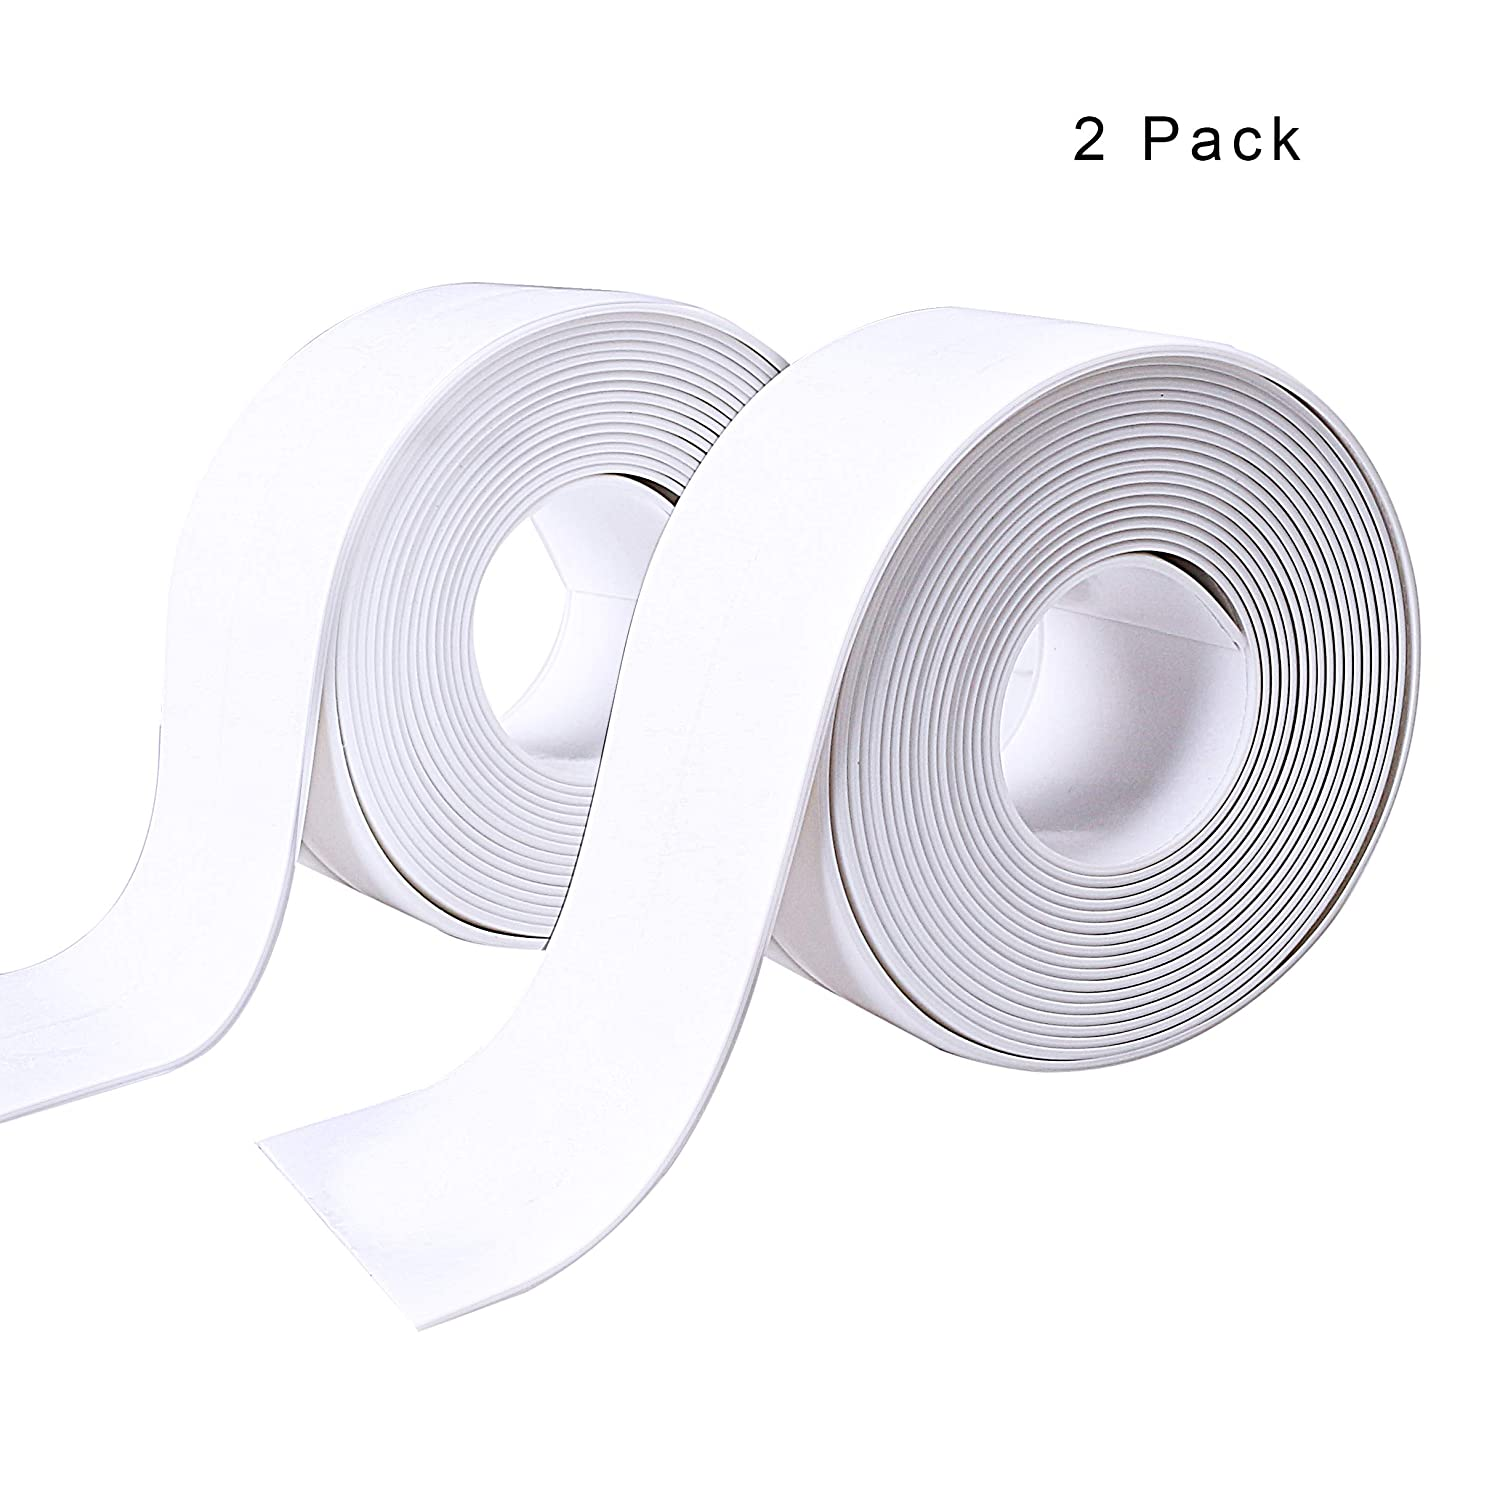 2 Pack Bathtub Sealant Tape, Self Adhesive Sealant Caulk Strip Waterproof Sealing Tape for Bathroom, Kitchen and Toilet 38mm x3.2m x 2 Roll pengxiaomei